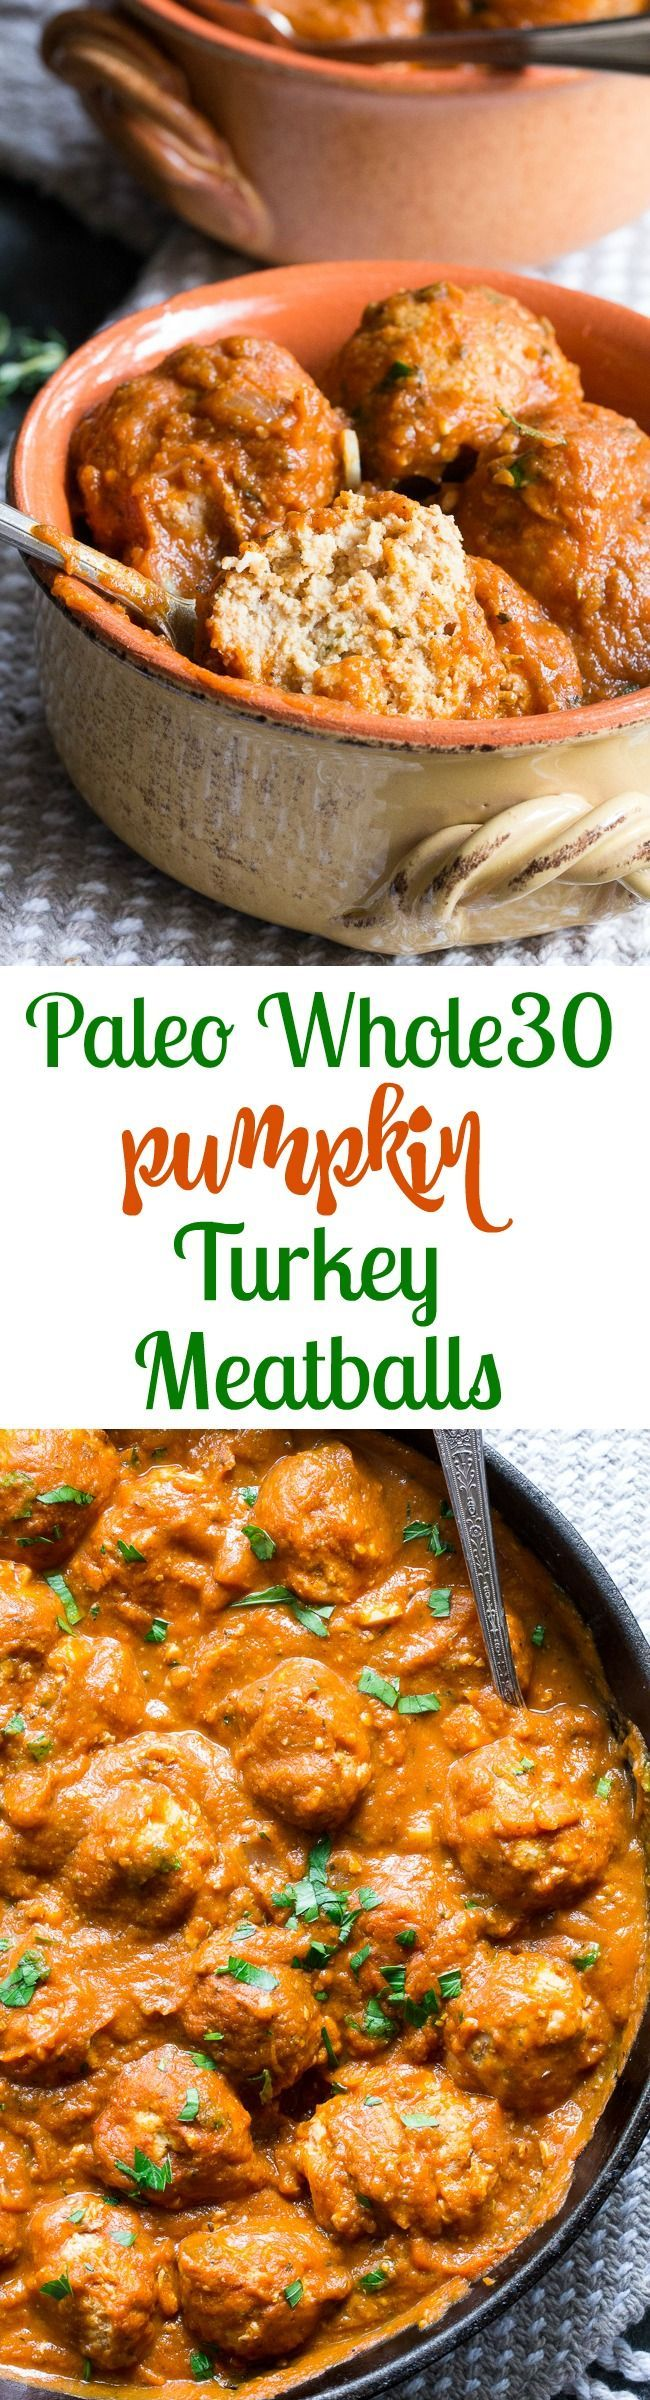 Pumpkin Turkey Meatballs with Creamy Harvest Tomato Sauce {Paleo, Whole30} #justeatrealfood #paleorunningmomma